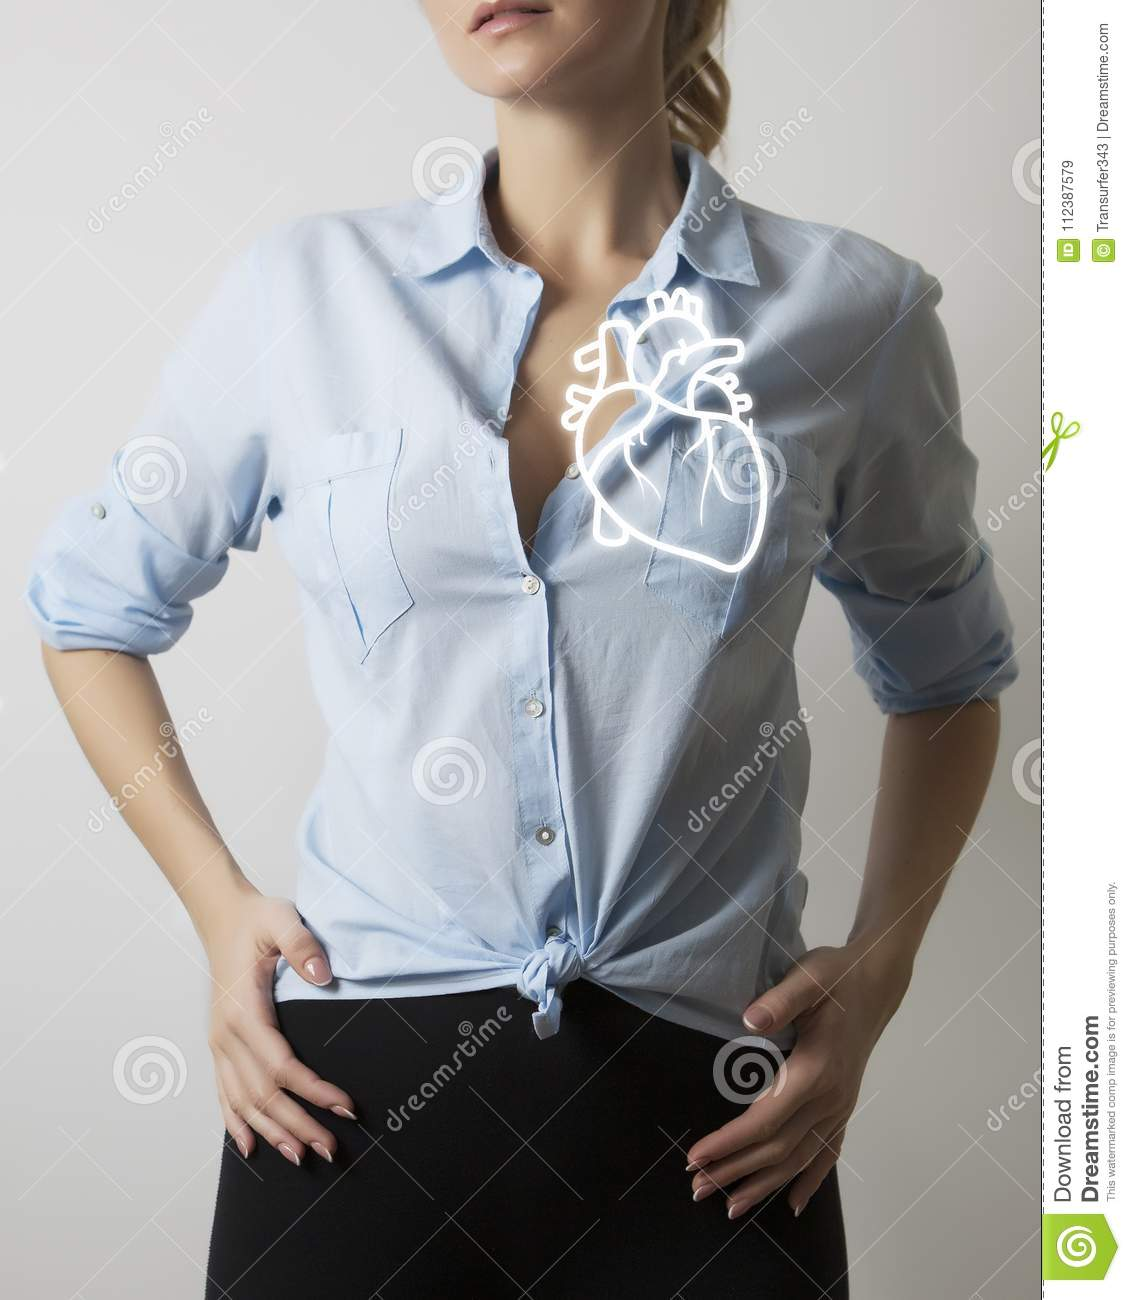 Woman With Visualisation Of Anatomy Heart Stock Image - Image of ...